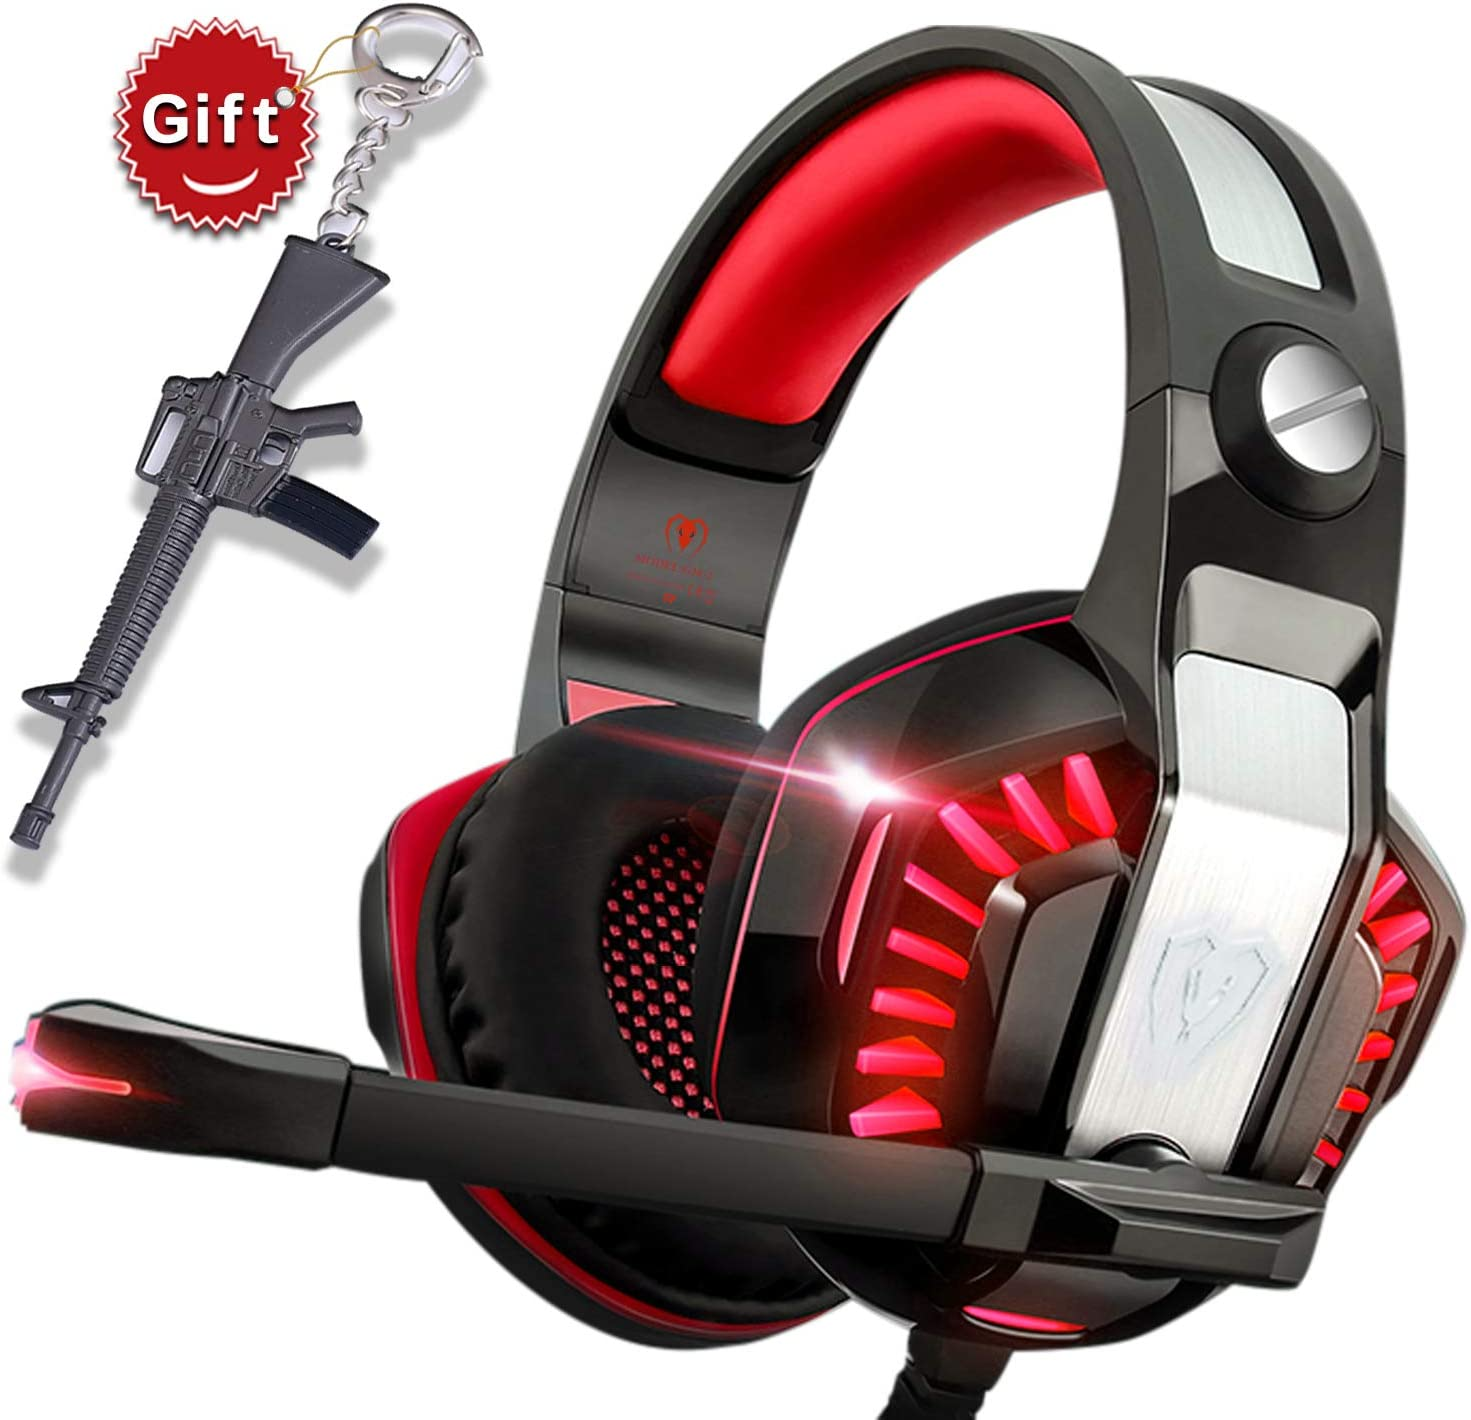 Gaming Headset for Xbox One,PS4,PC,Laptop,Tablet with Mic,Pro over Ear Headphones,Two Free 3.5mm Y Splitter,Noise Canceling,USB Led Light,Stereo Bass Surround for kids,Mac,Smartphones